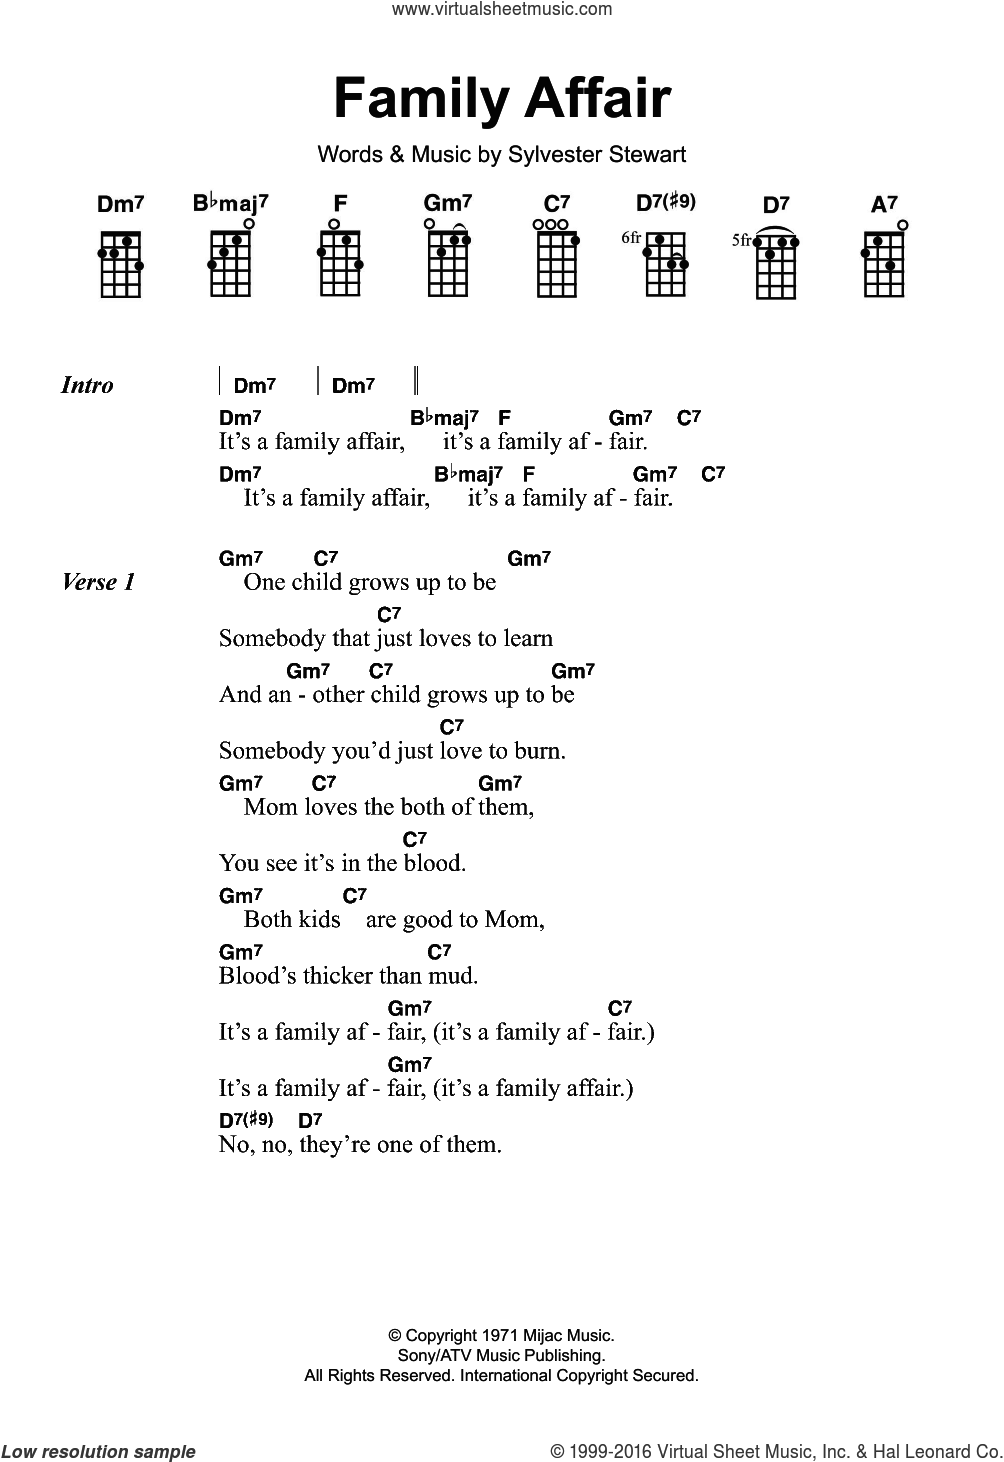 Family Affair sheet music for ukulele by Sylvester Stewart. Score Image Preview.